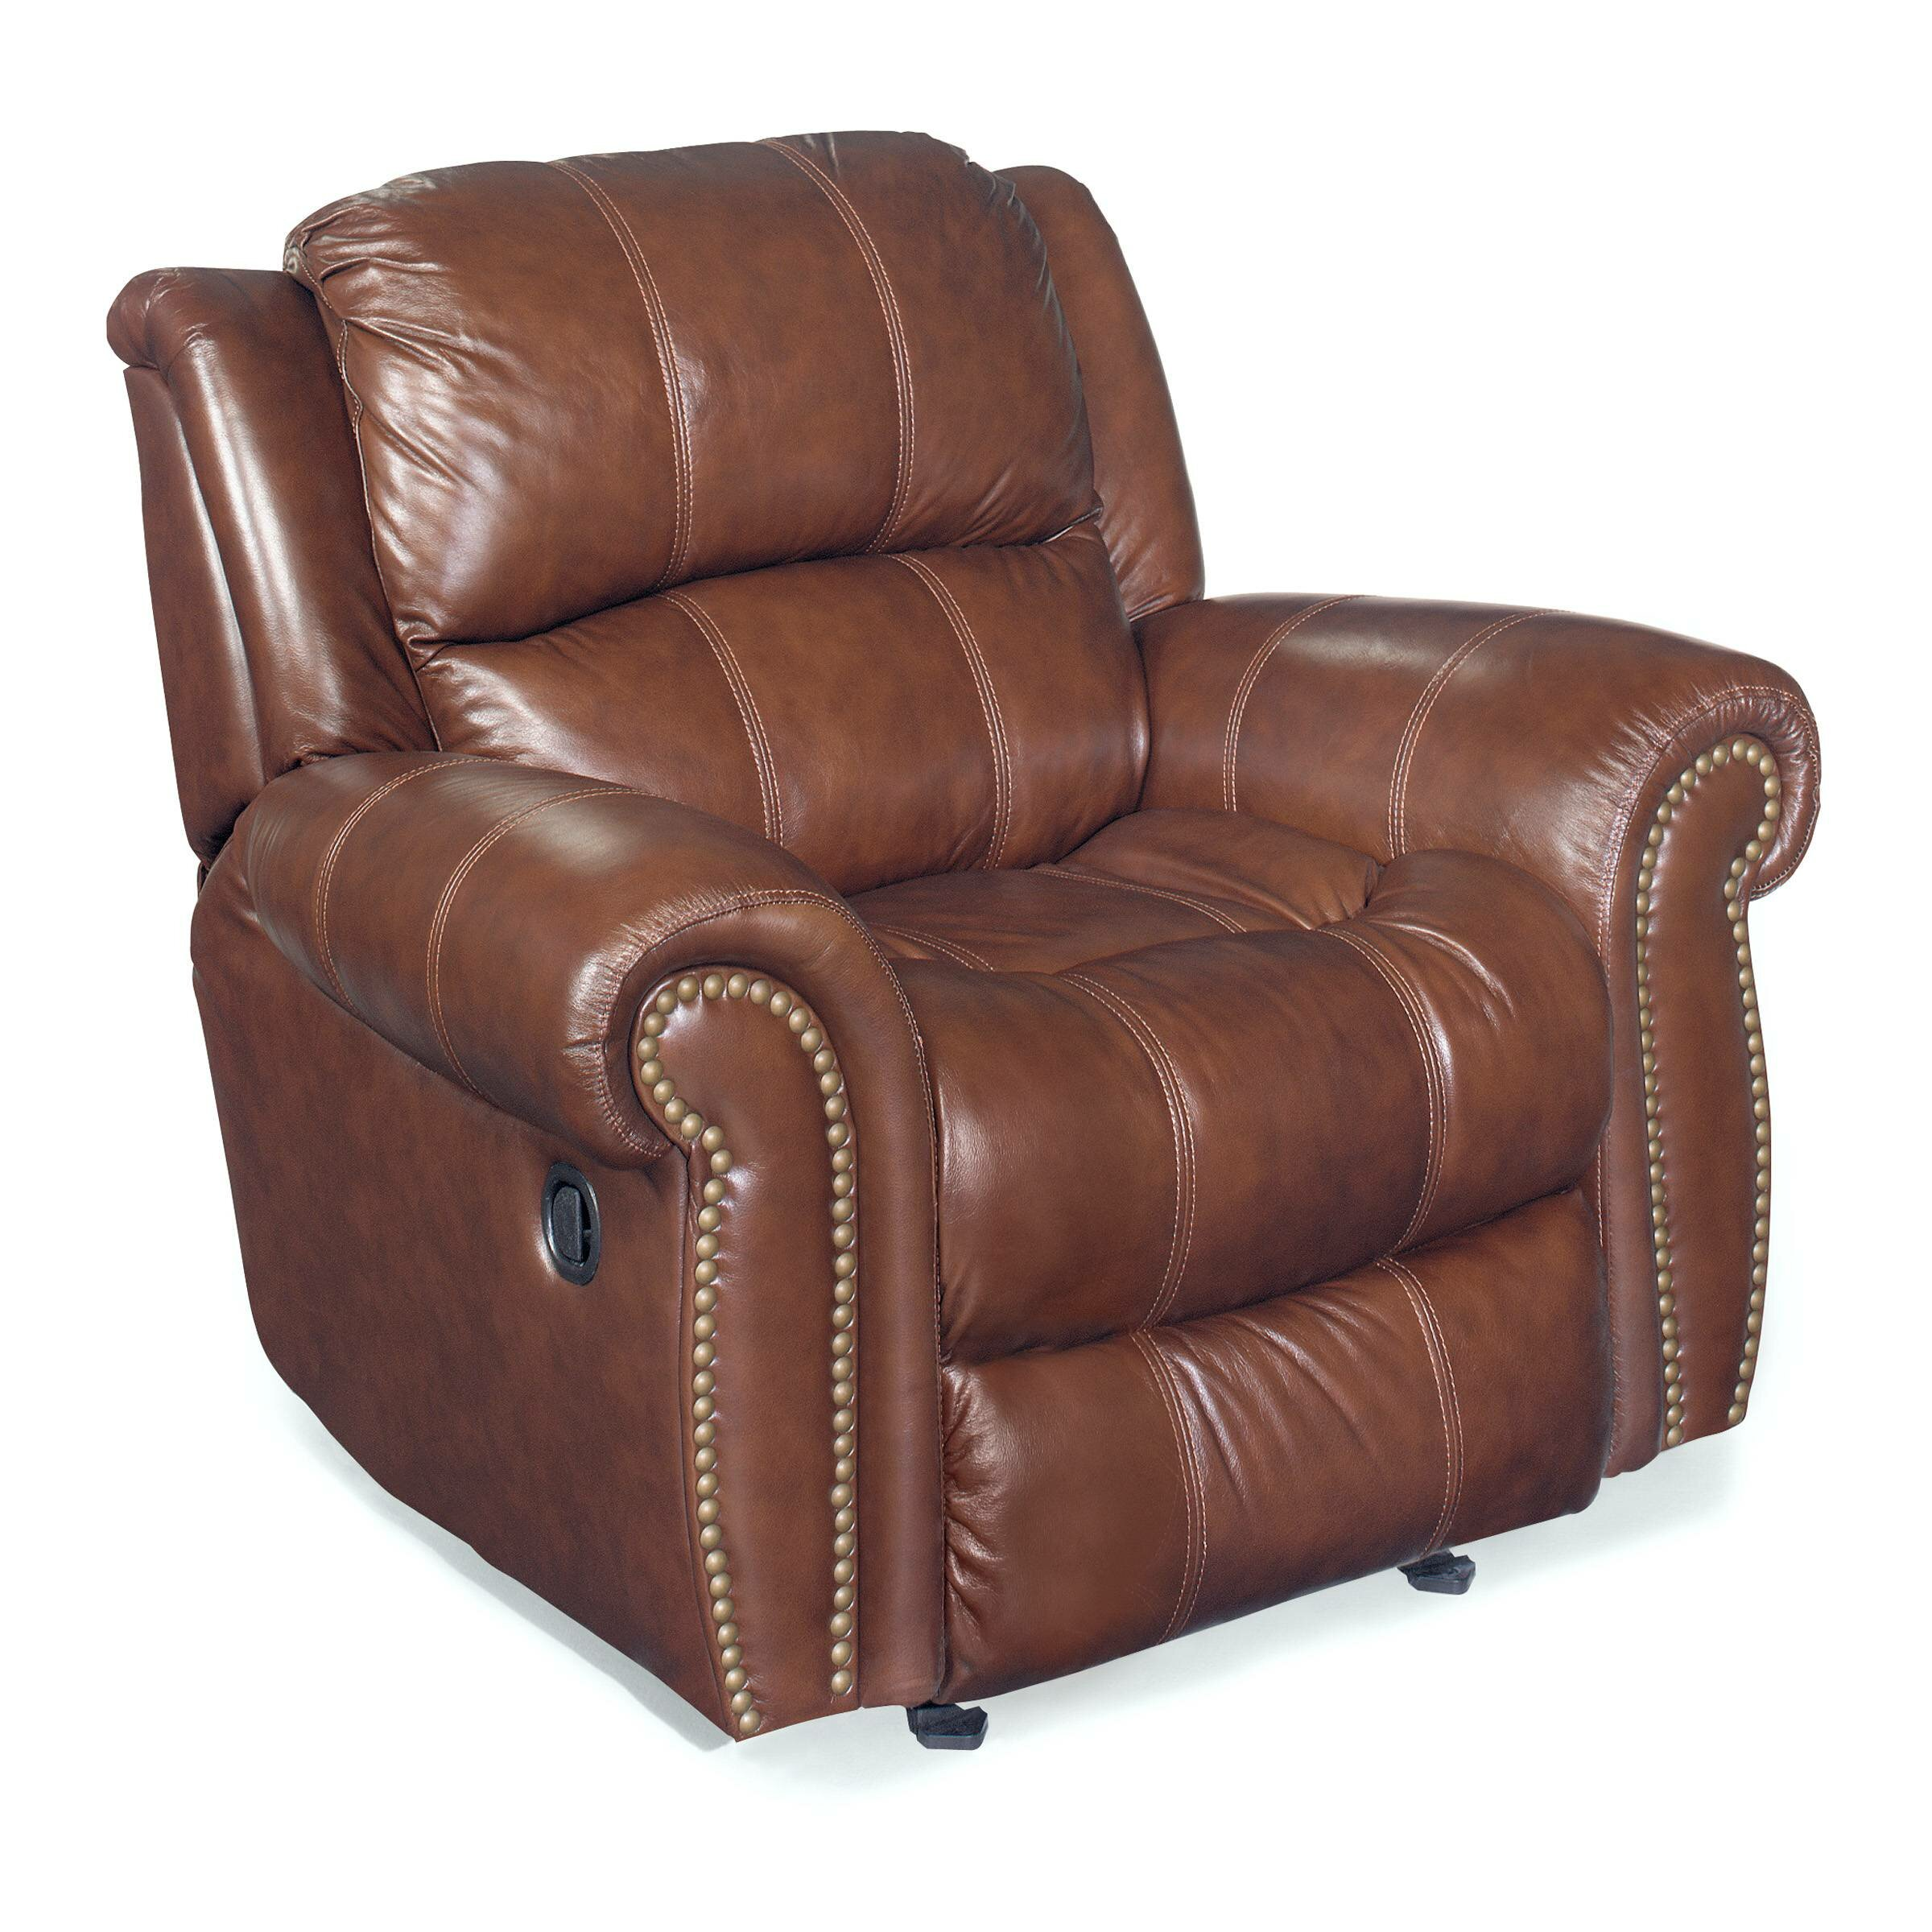 Hooker Furniture Glider Leather Recliner Chair Reviews